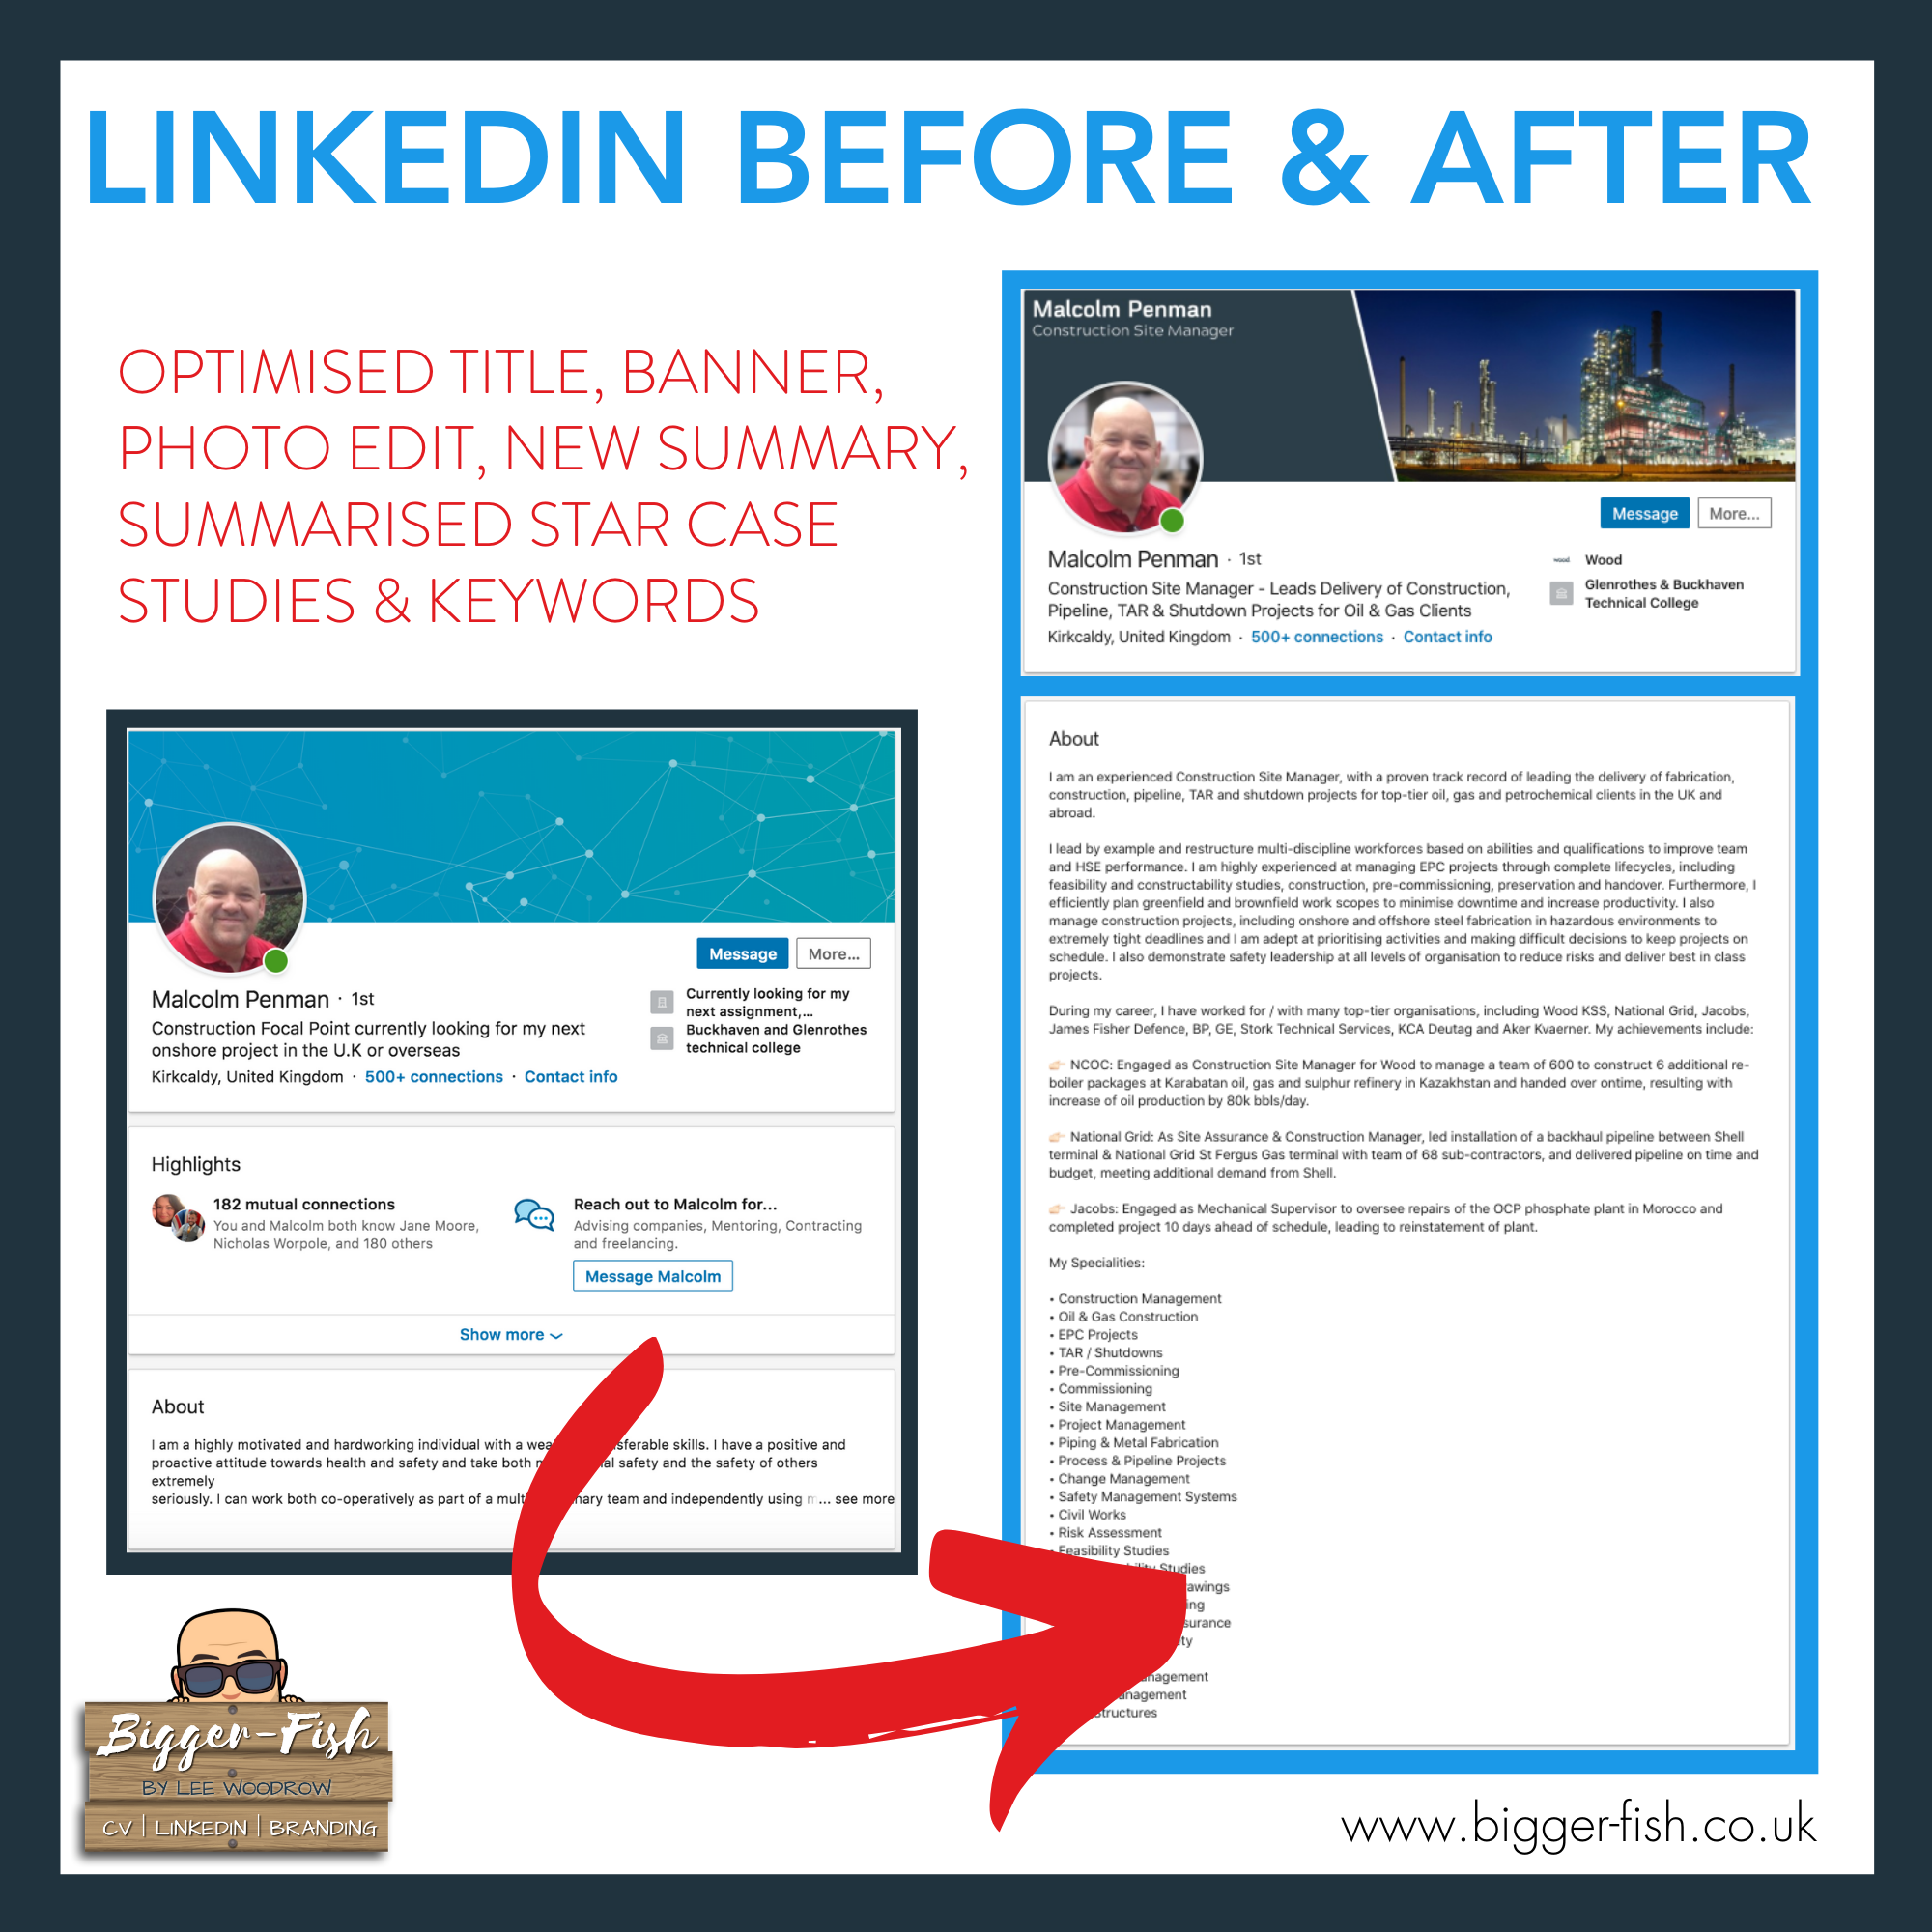 Bigger Fish LinkedIn Before & After Exam